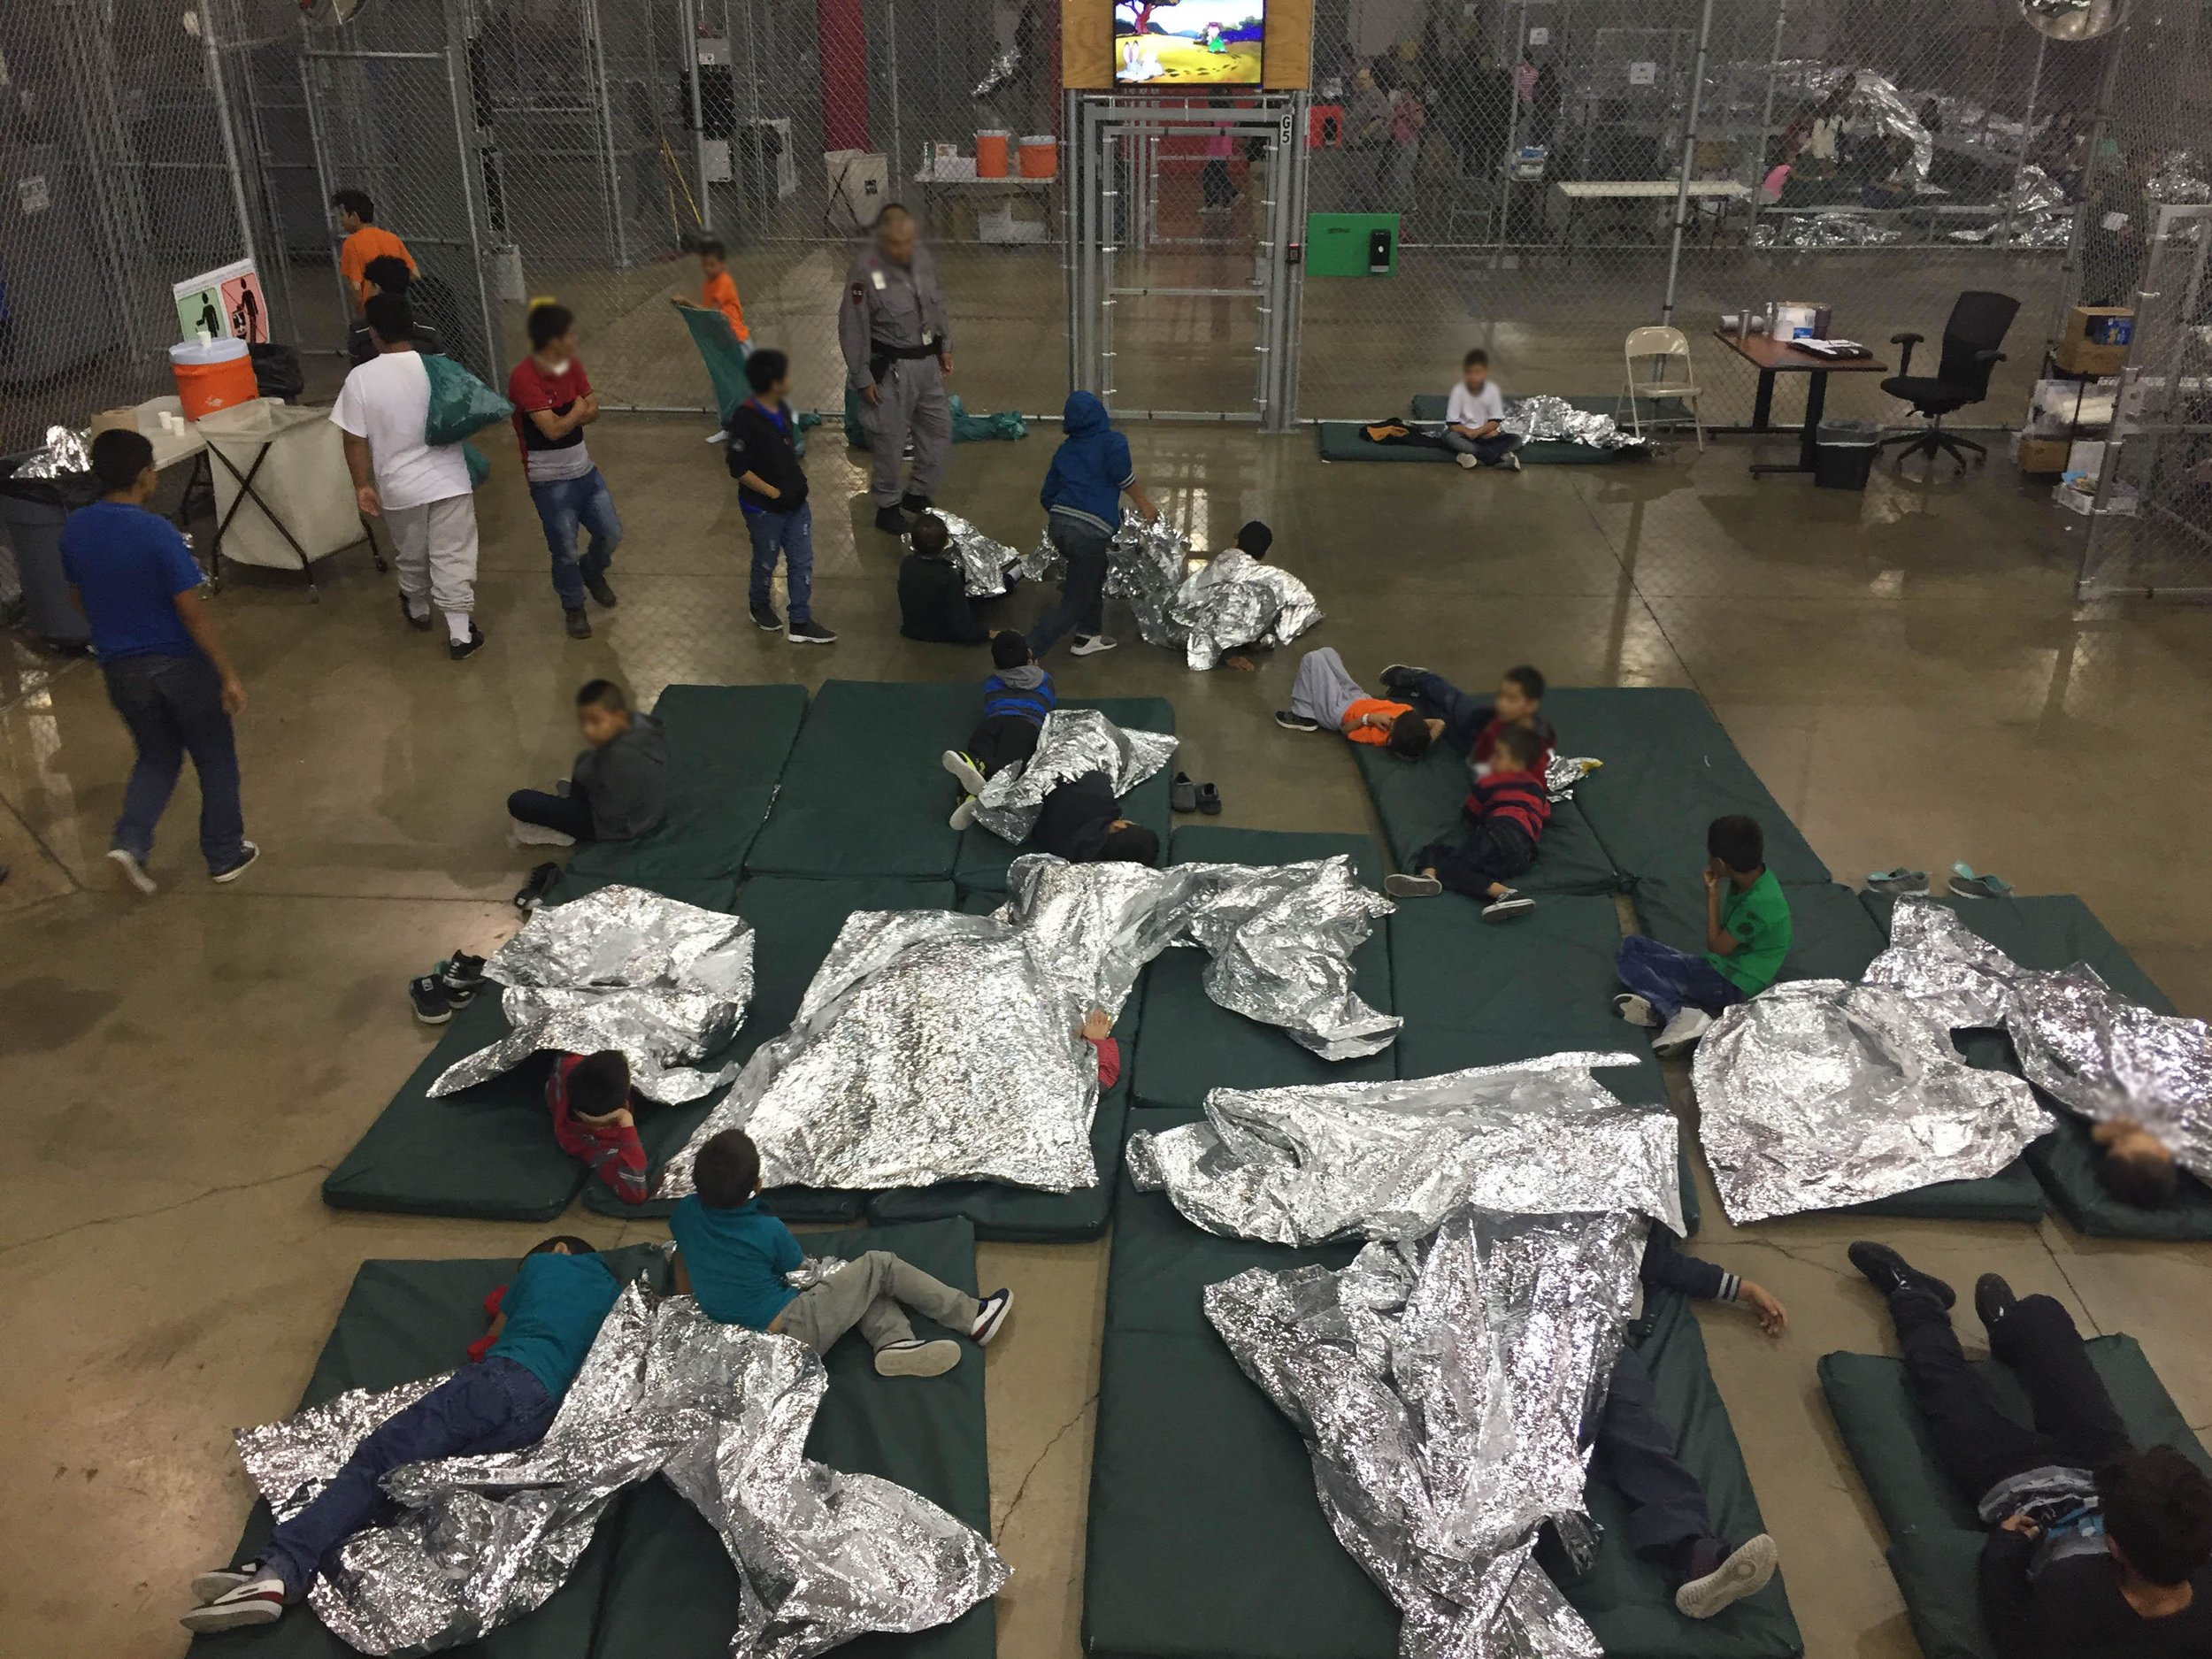 Photo provided by U.S. Customs and Border Protection of children at the Central Processing Center on June 17, 2018 in McAllen, Texas.